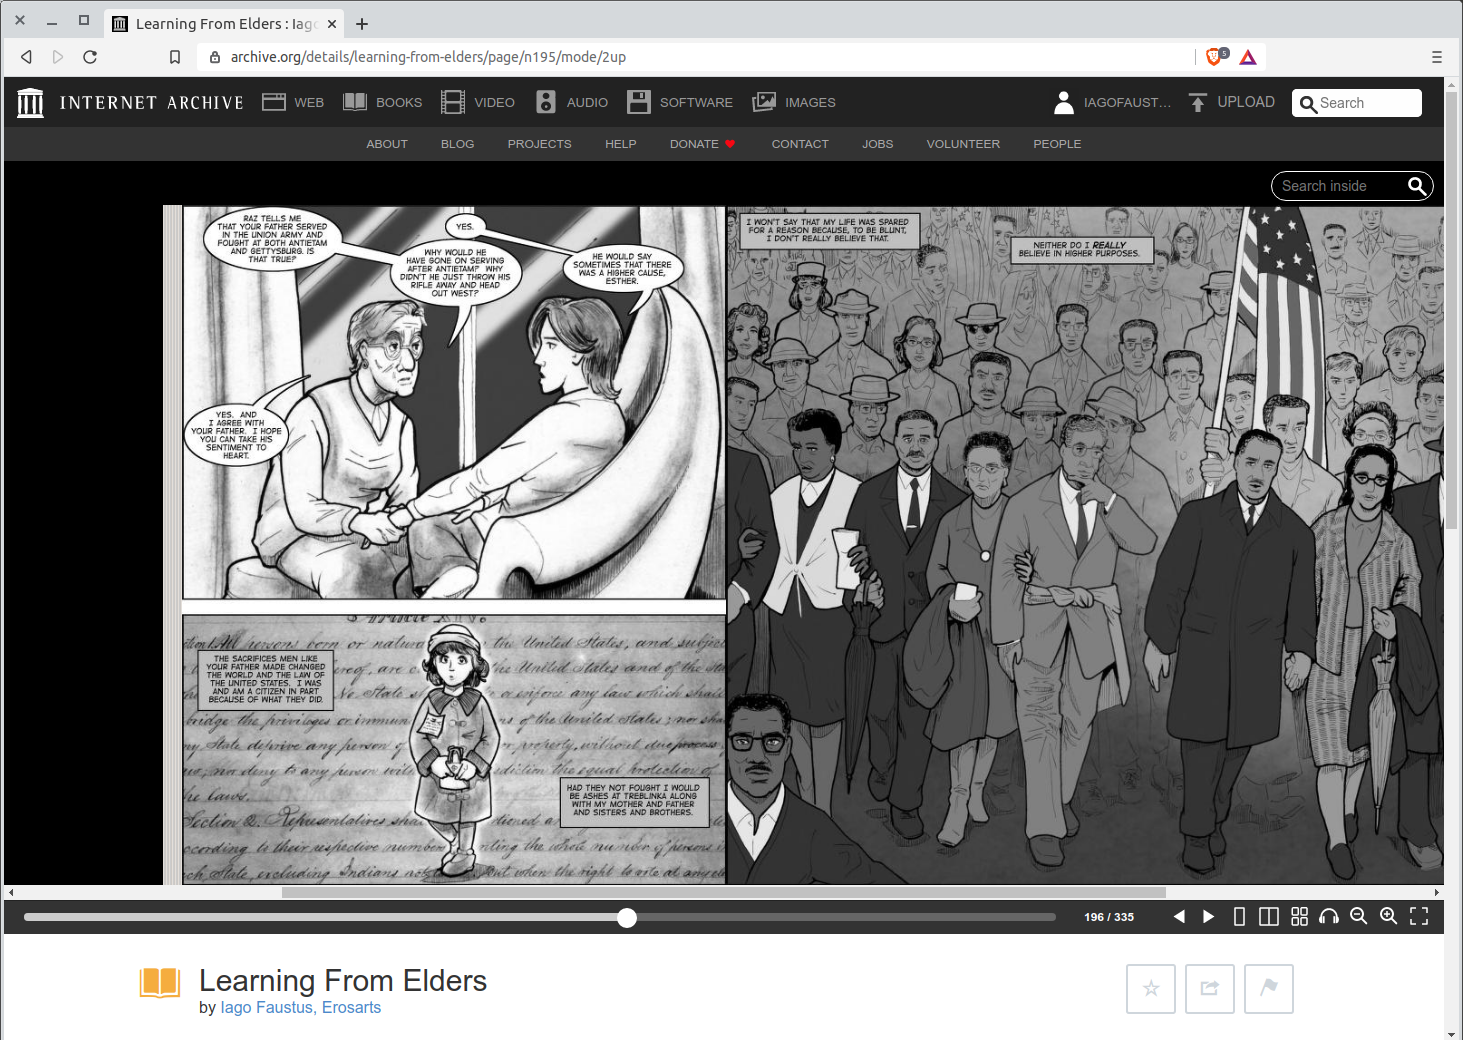 Esther narrates her belief in America for the spread on the Internet Archive screenshot page of Learning from Elders.